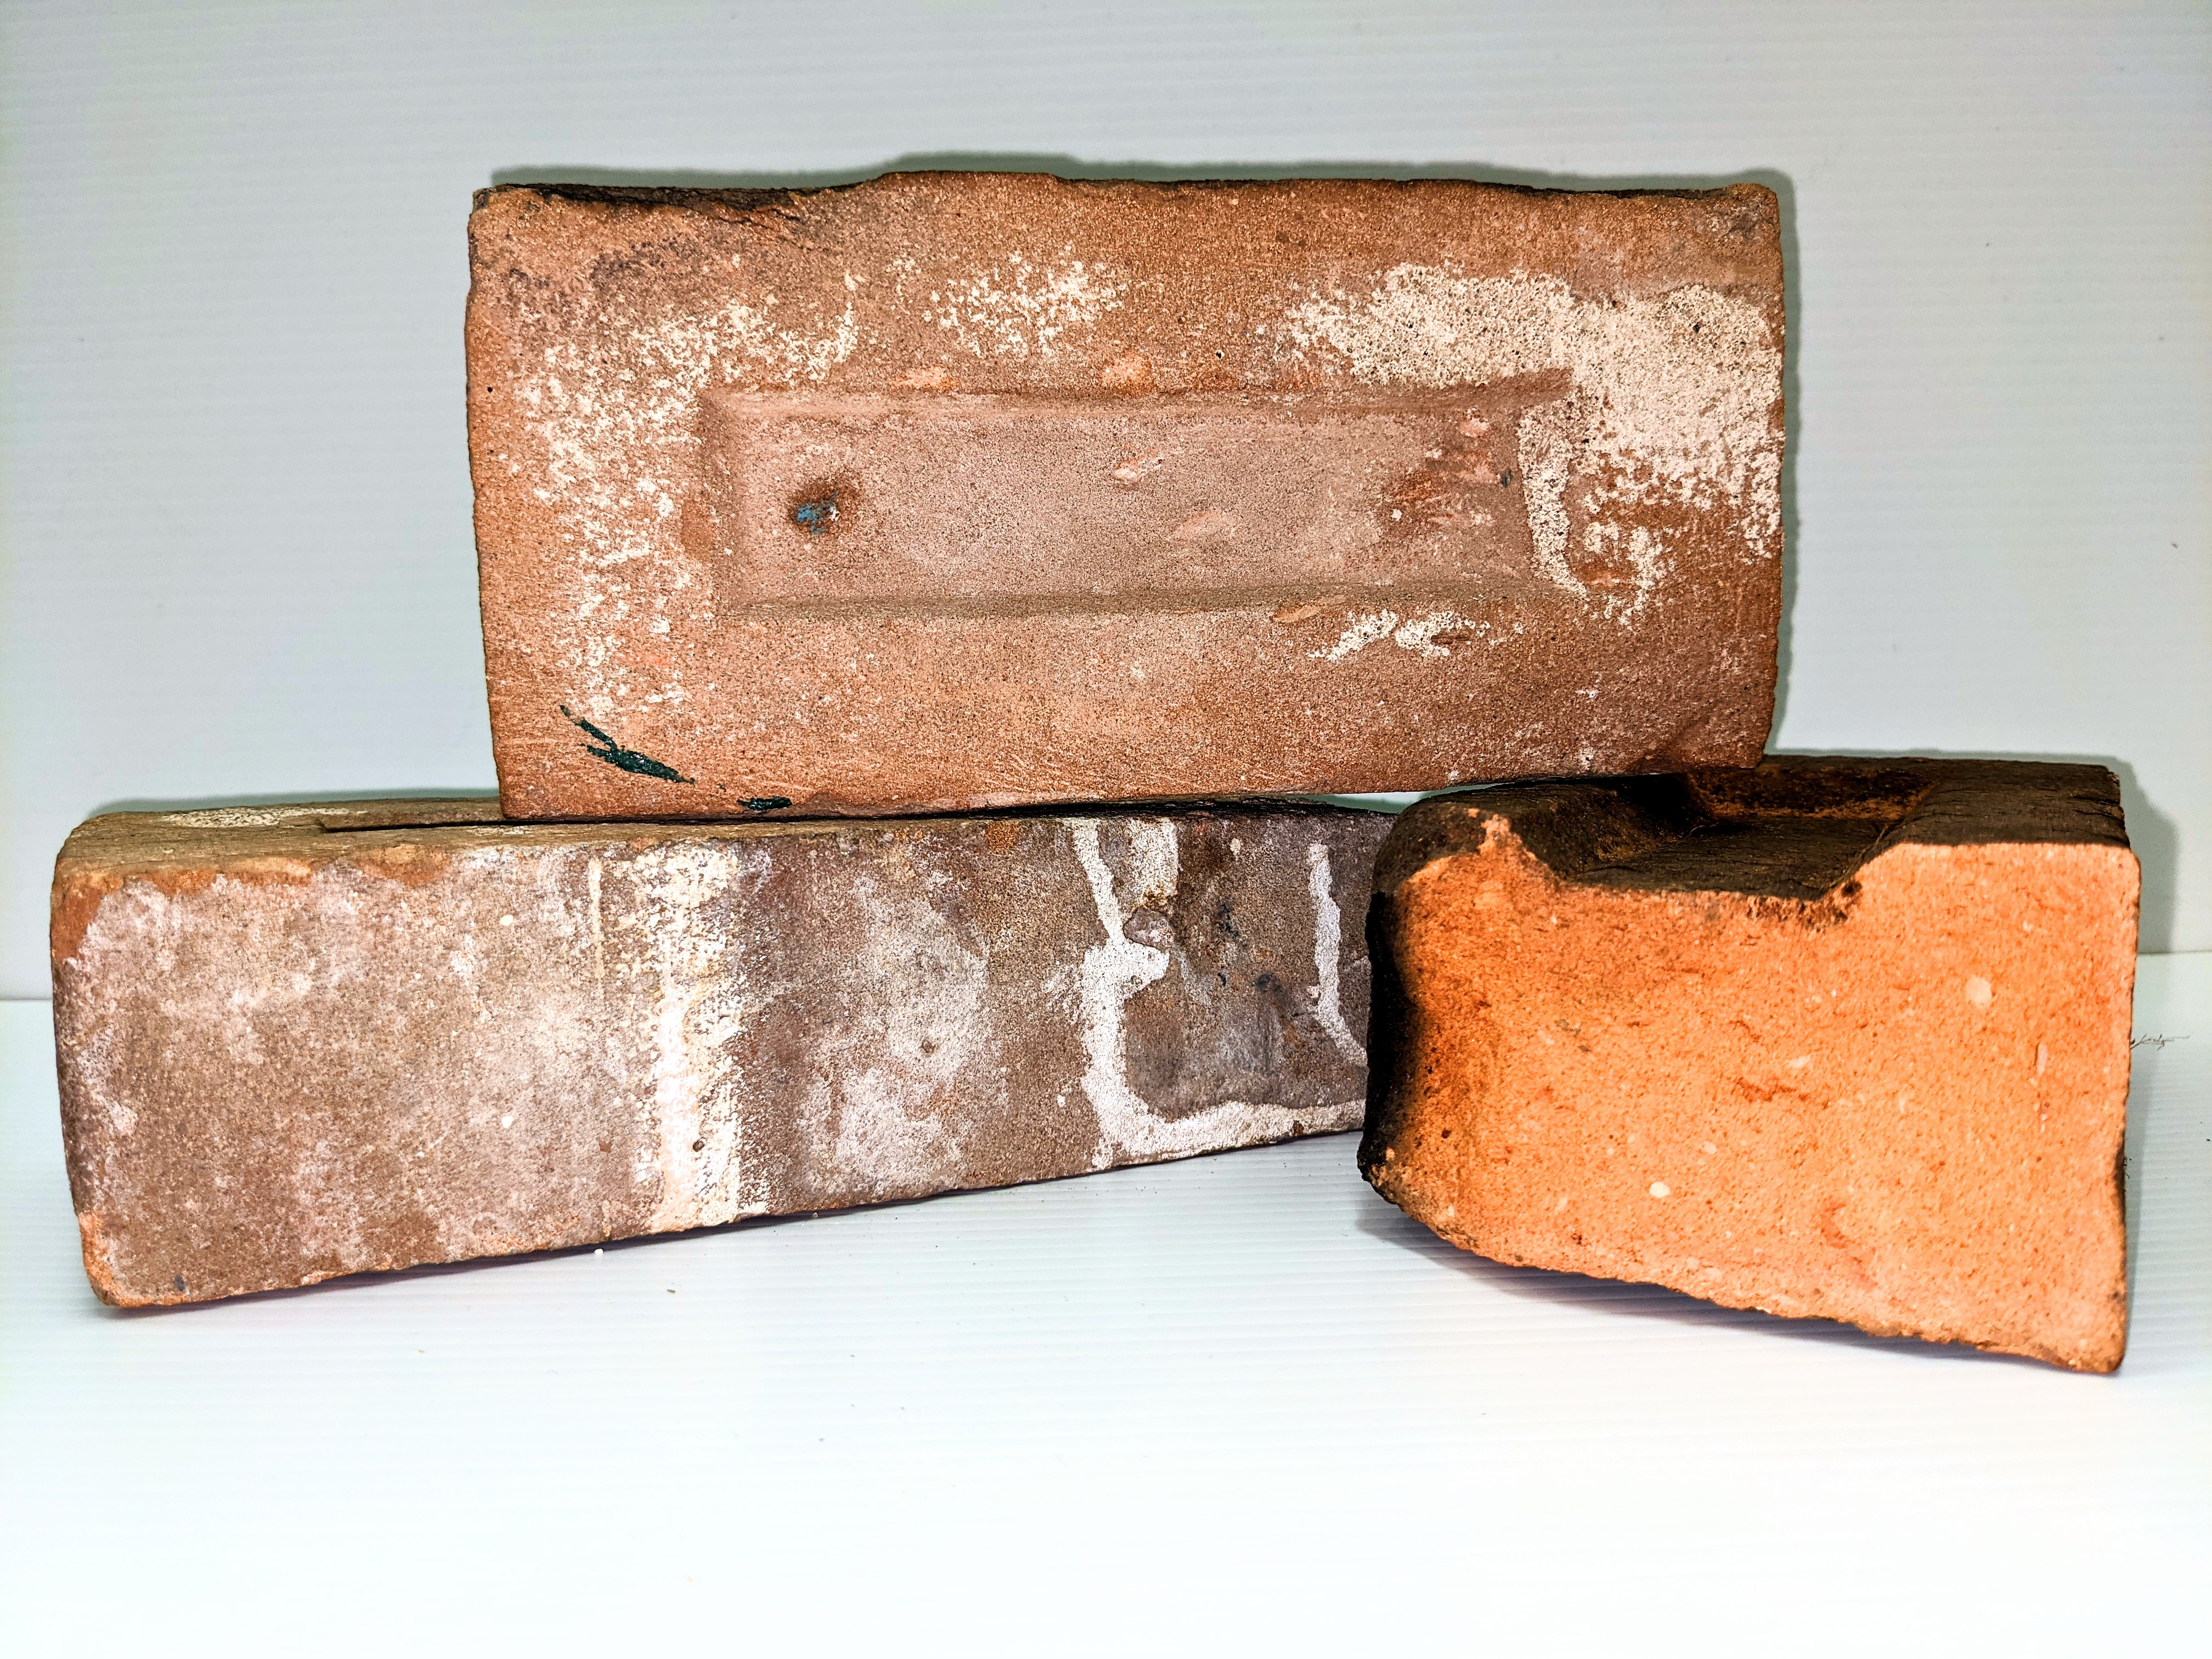 These bricks were made locally in Fort Vermilion! The Carruthers family owned and operated a brickyard on the outskirts of Fort Vermilion. Operational from 1903-1905, it was the most northern brickyard in Alberta and produced bricks for local construction and settlements further north such as Hay River. The Old Bay House and Clarke House chimneys are made with bricks from this yard.  05/04/2021 2009.5.1 / Toews, Marilee 986.2 / Bell, Lorna